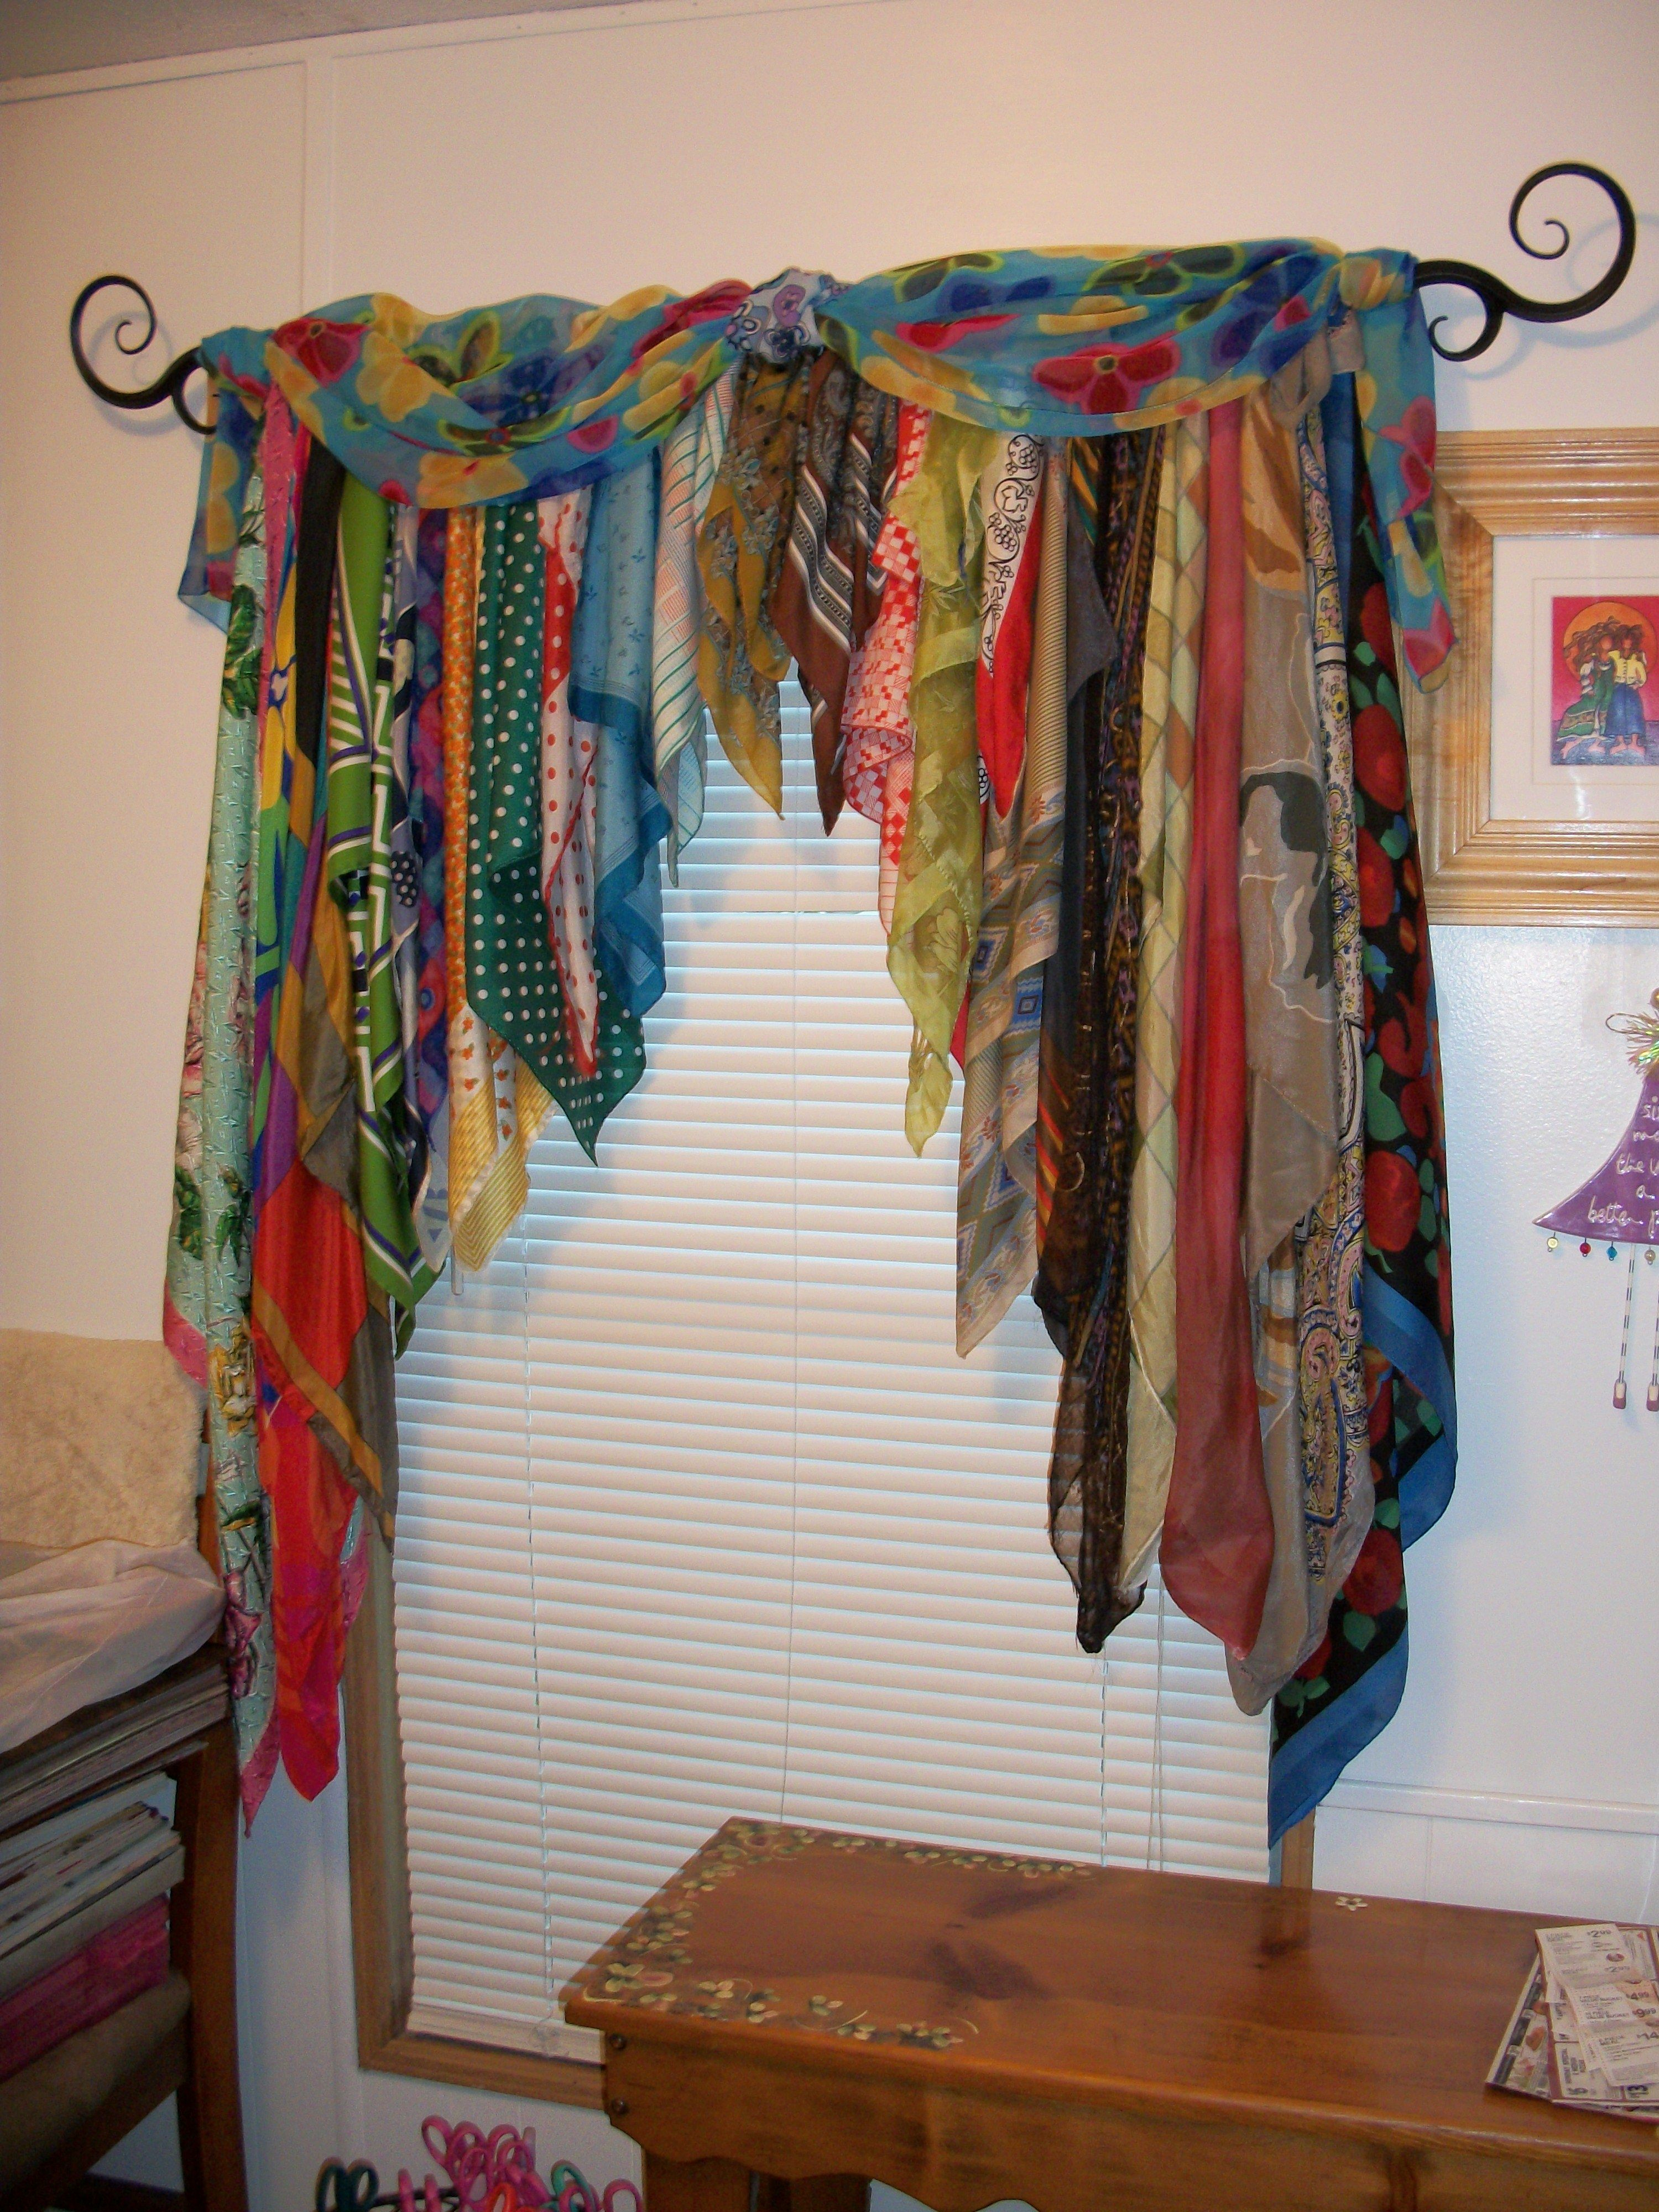 American Hippie Diy Crafts Use Old Scarves To Make A